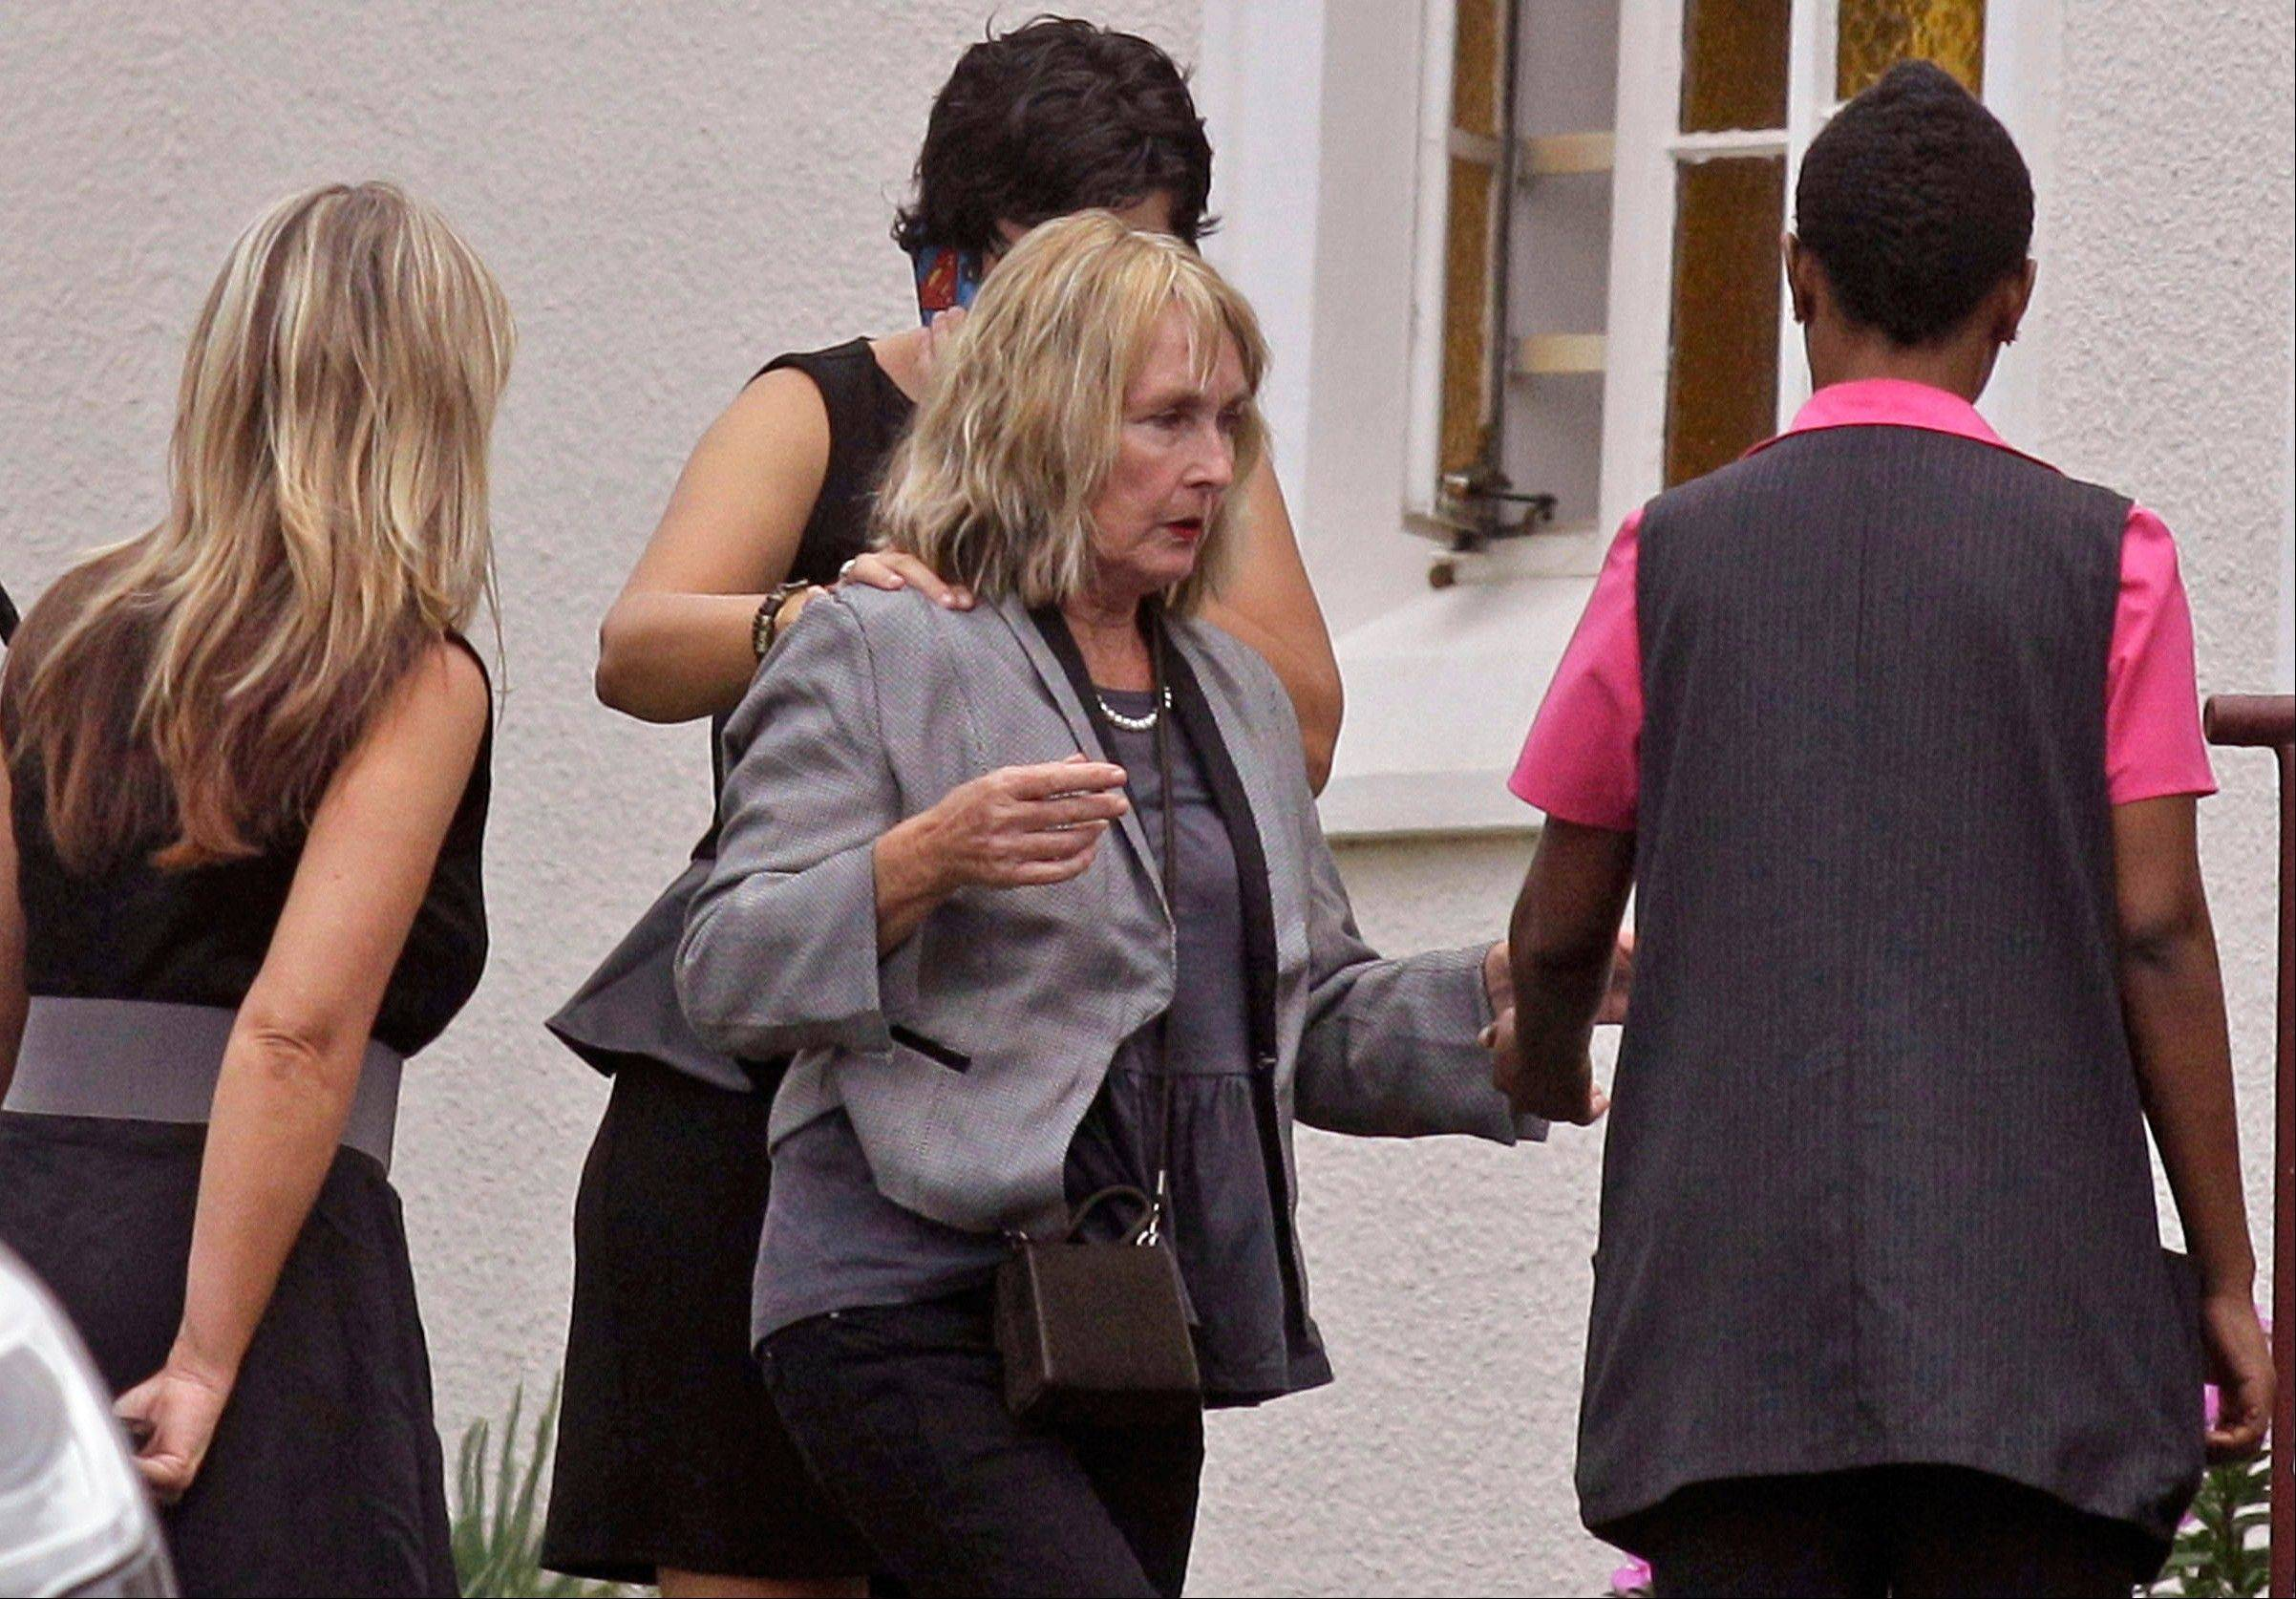 June Steenkamp, center, the mother of Reeva Steenkamp, arrives for her funeral Tuesday in Port Elizabeth, South Africa. The Steenkamp family has struggled with it's own grief and harbors misgivings about efforts by the Pistorius family to reach out to them with condolences.